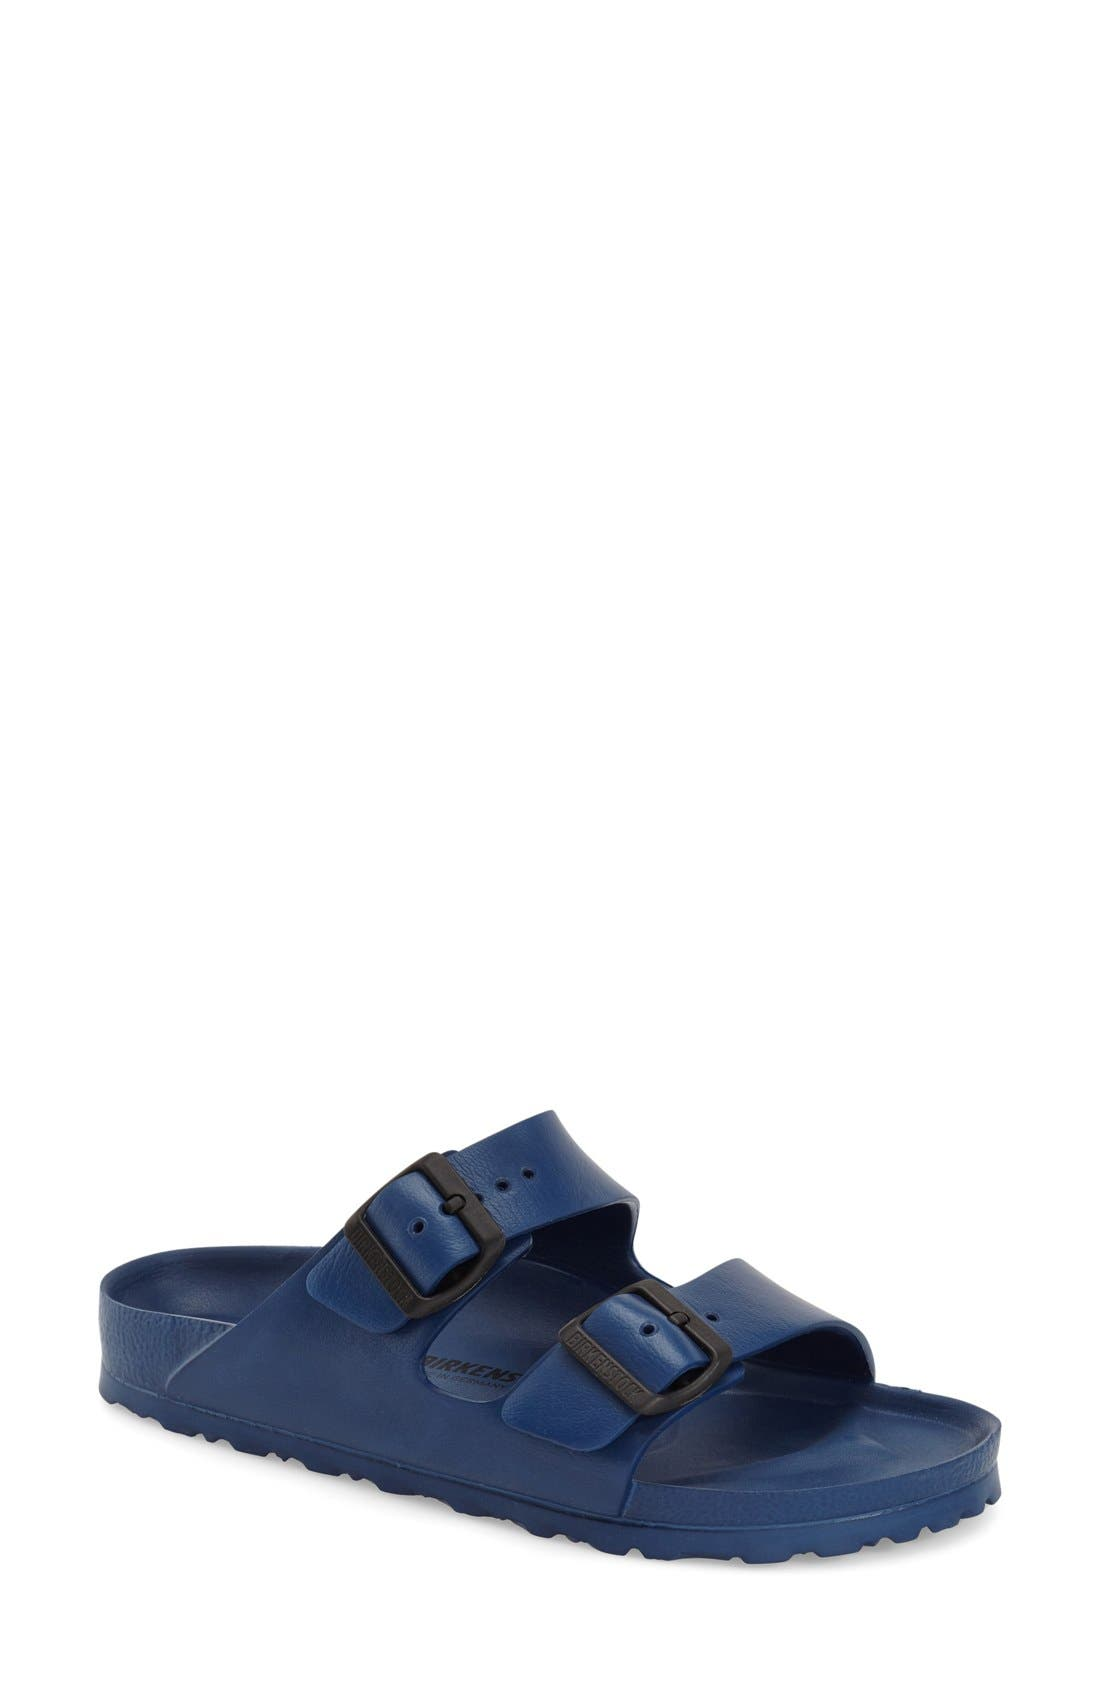 Birkenstock Essentials - Arizona Slide Sandal (Women) (Nordstrom Exclusive)